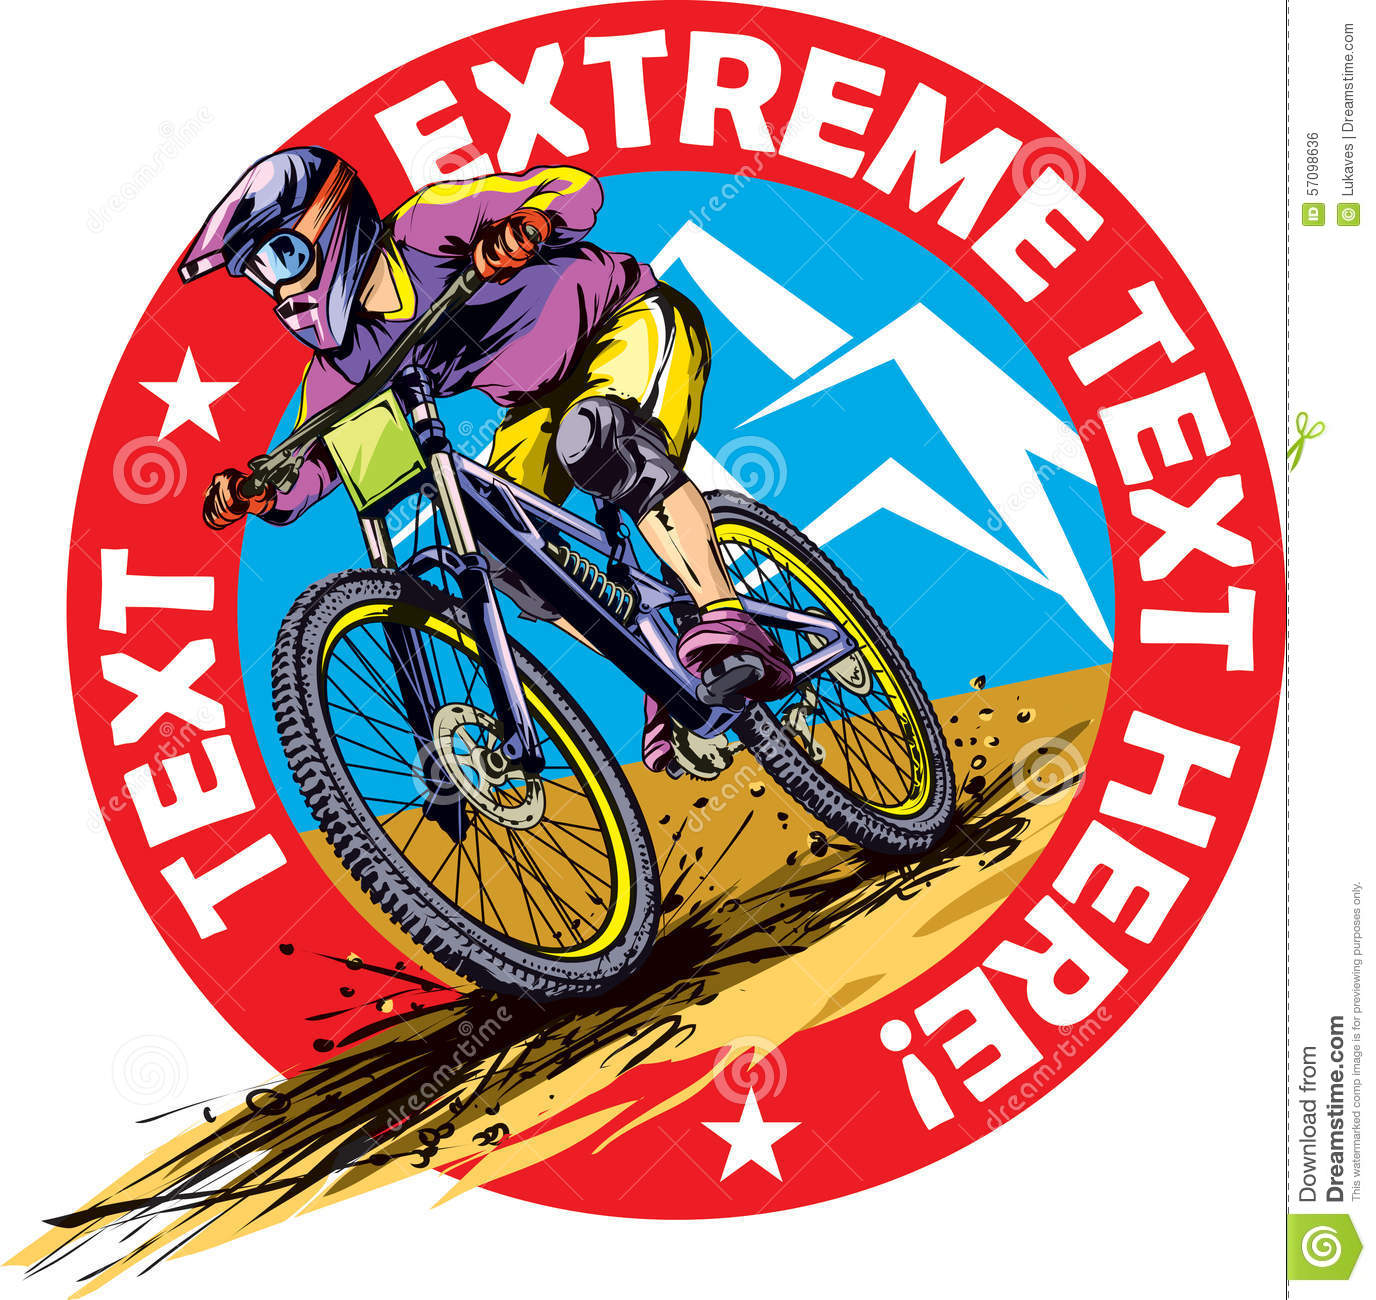 Mtb Rider Stock Illustrations – 179 Mtb Rider Stock ...